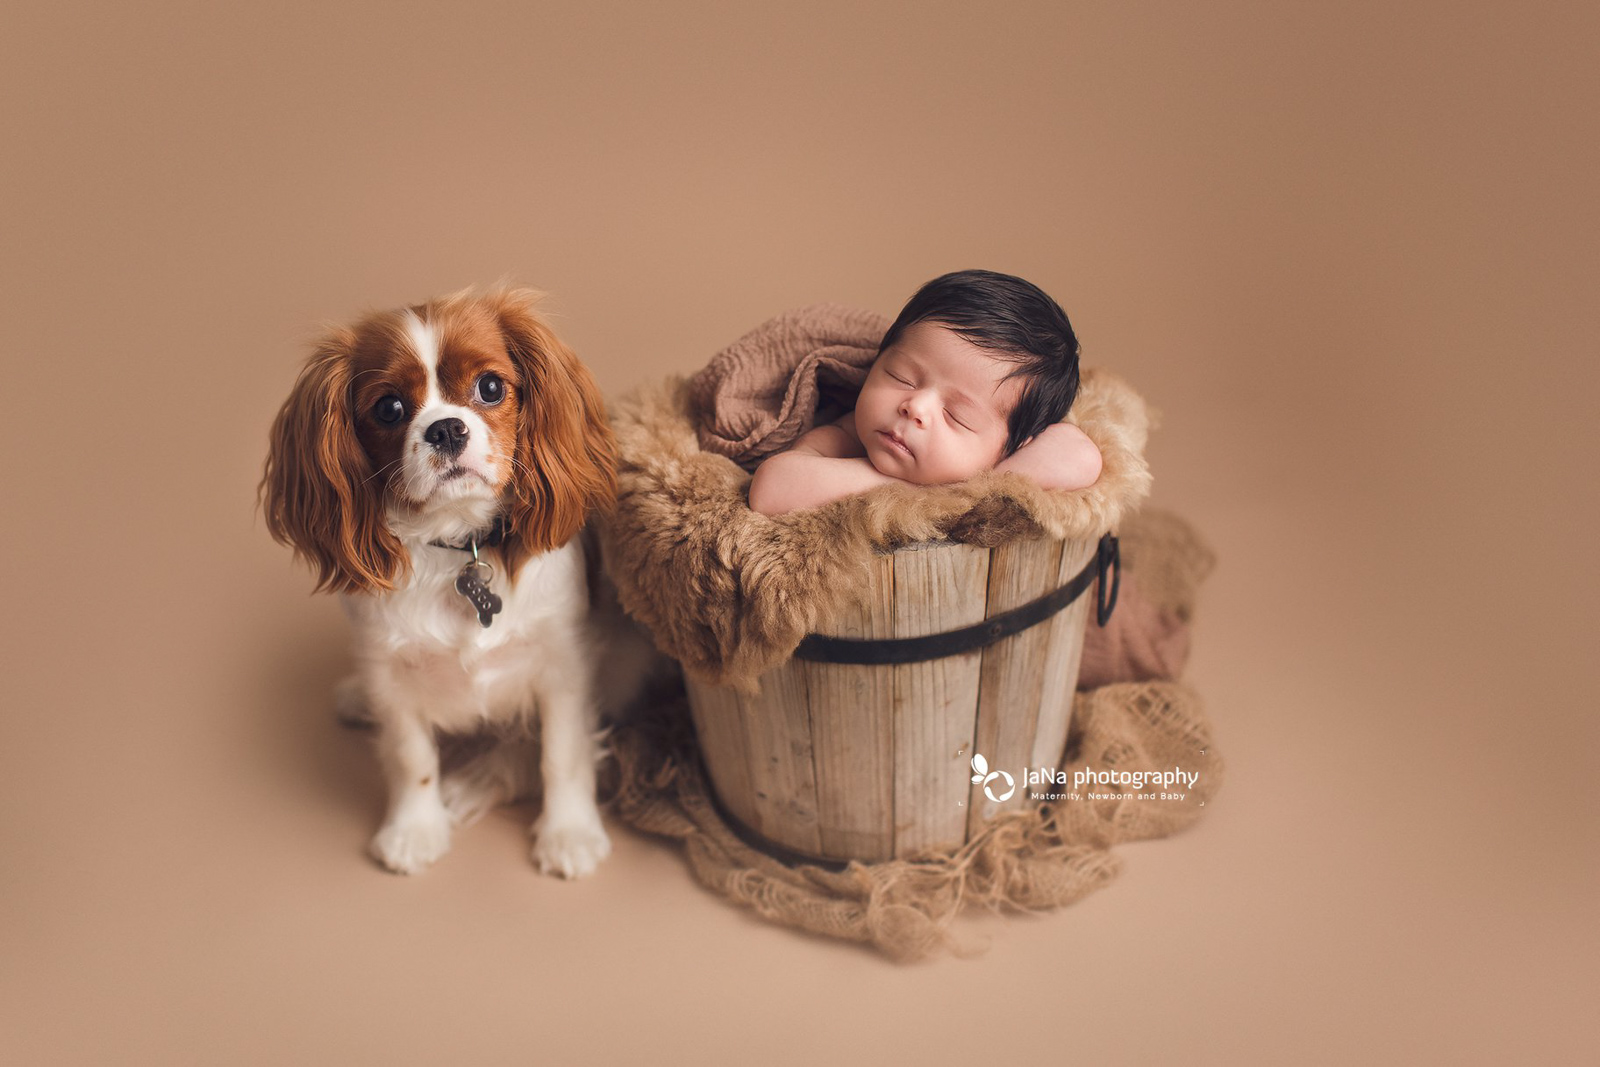 baby girl and cute small dog - newborn photography vancouver bc